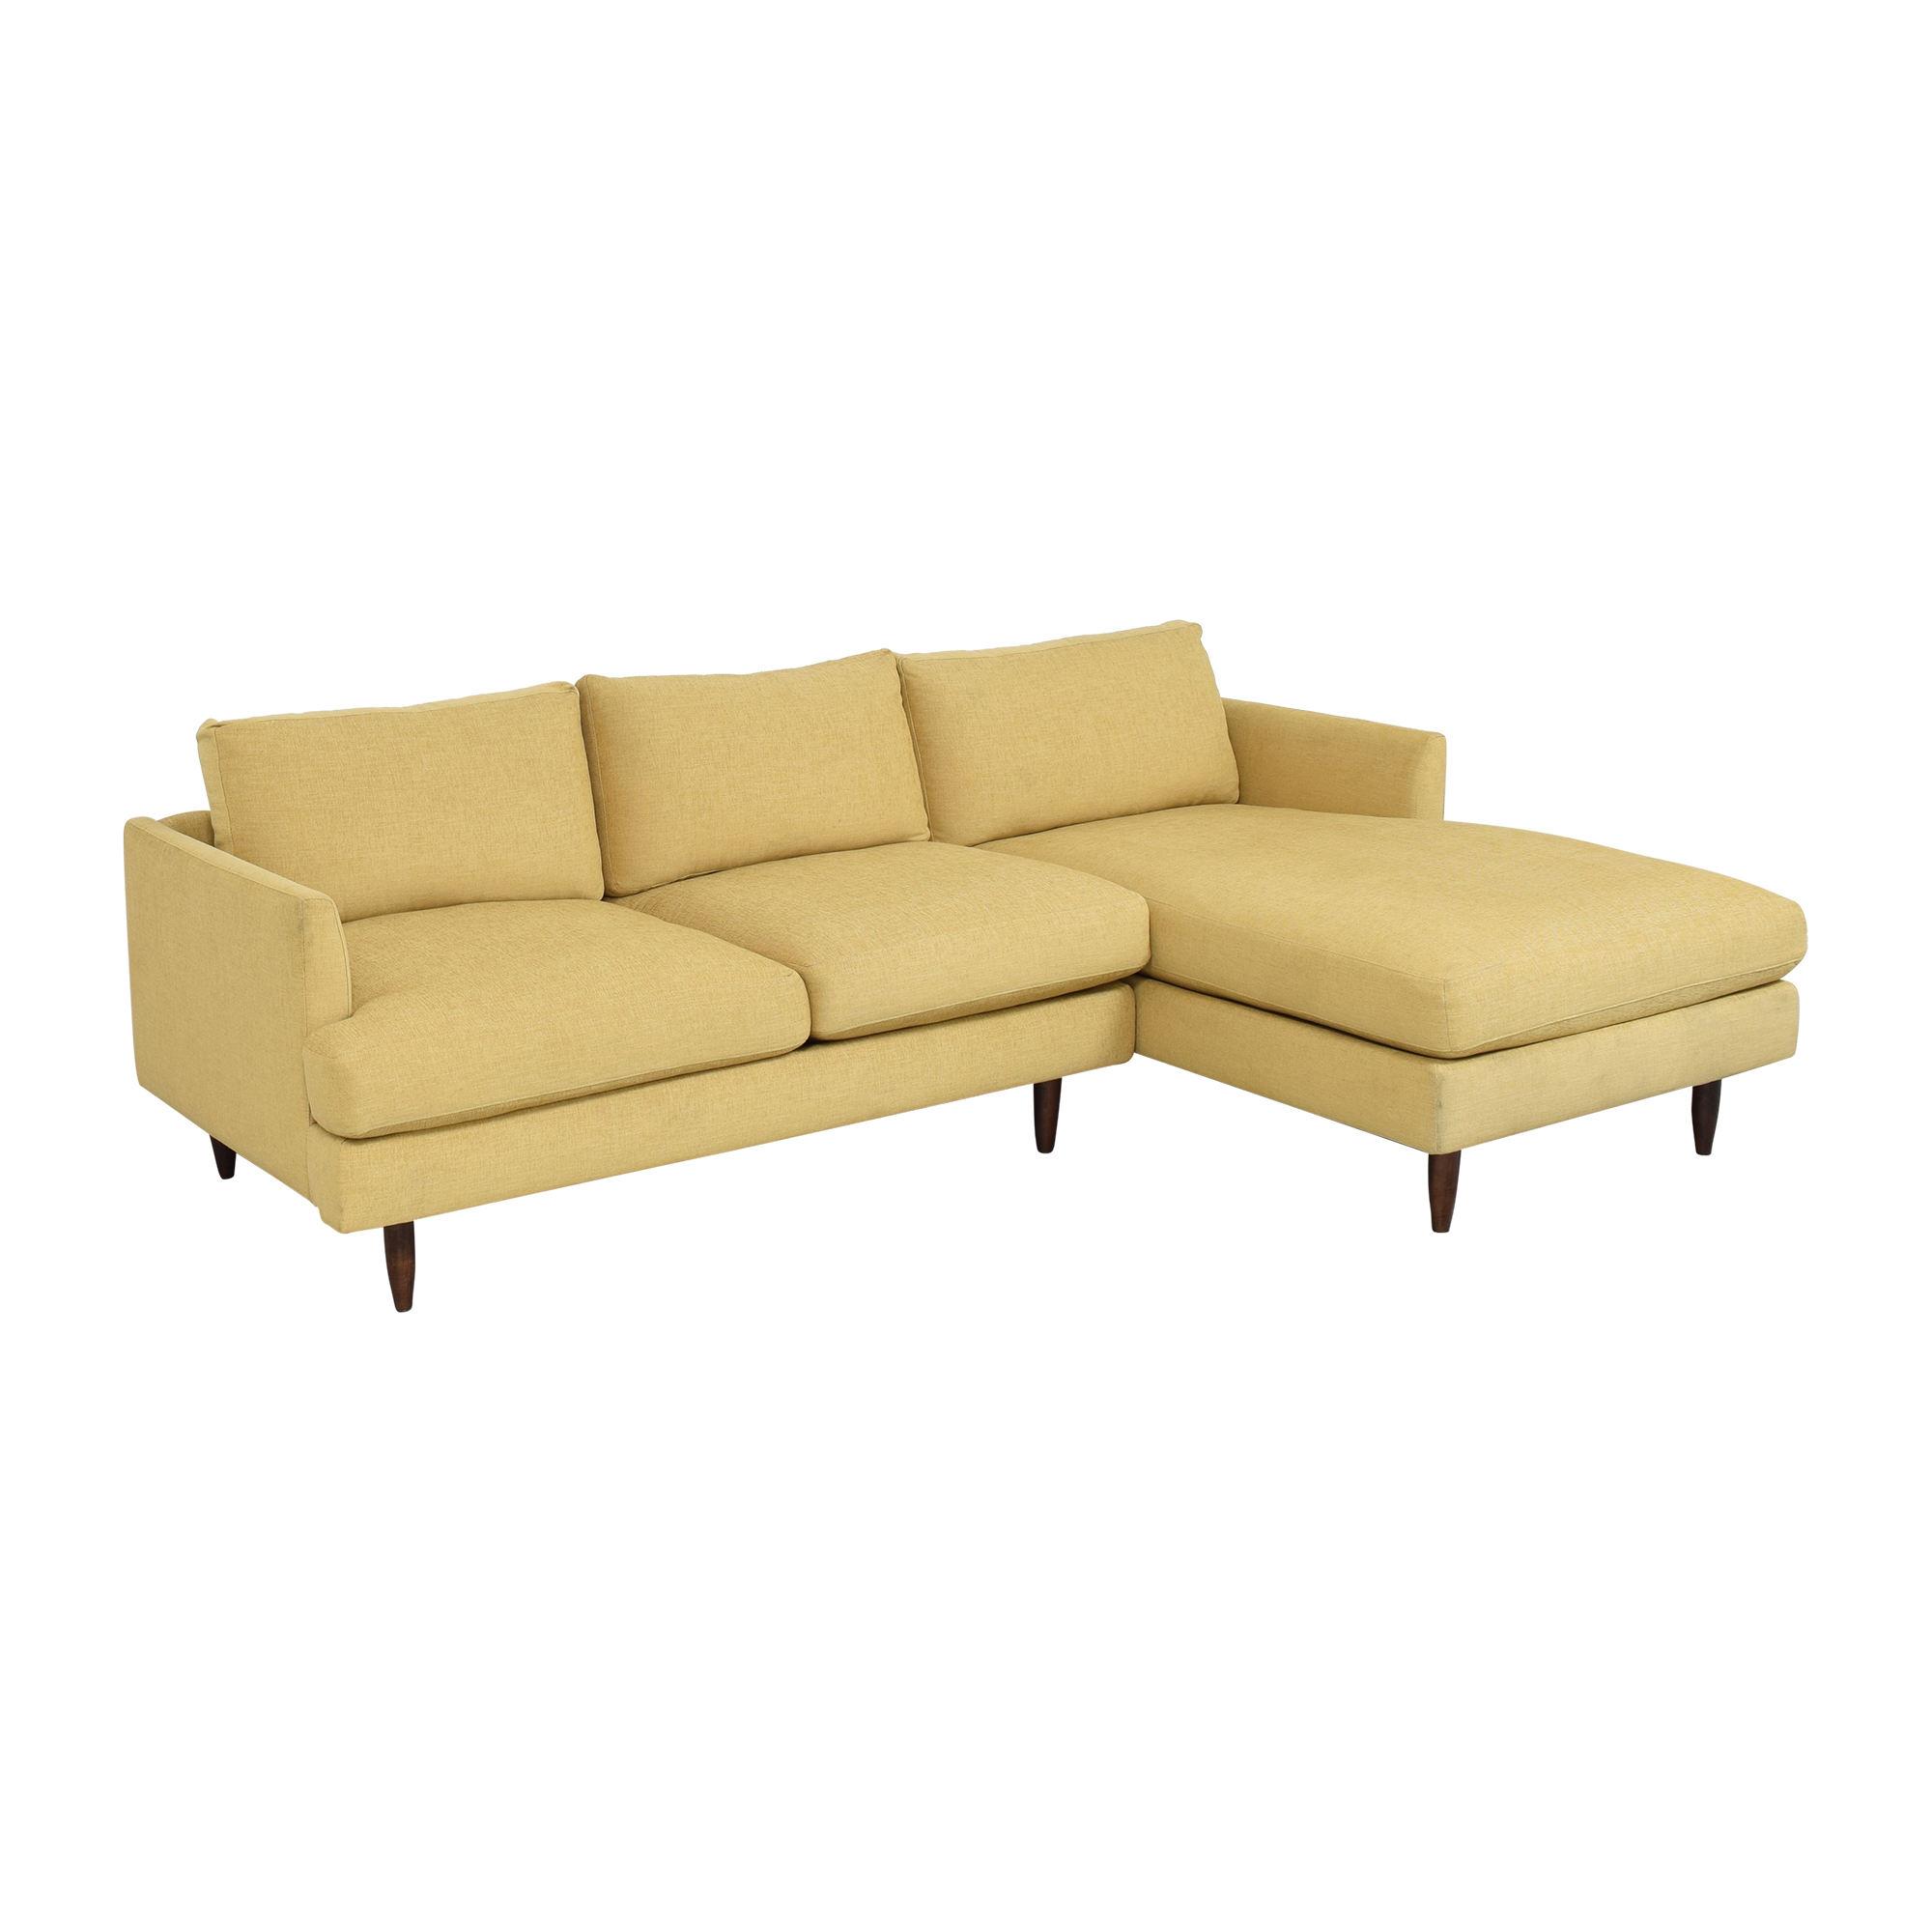 BenchMade Modern BenchMade Modern Crowd Pleaser Sofa with Chaise for sale